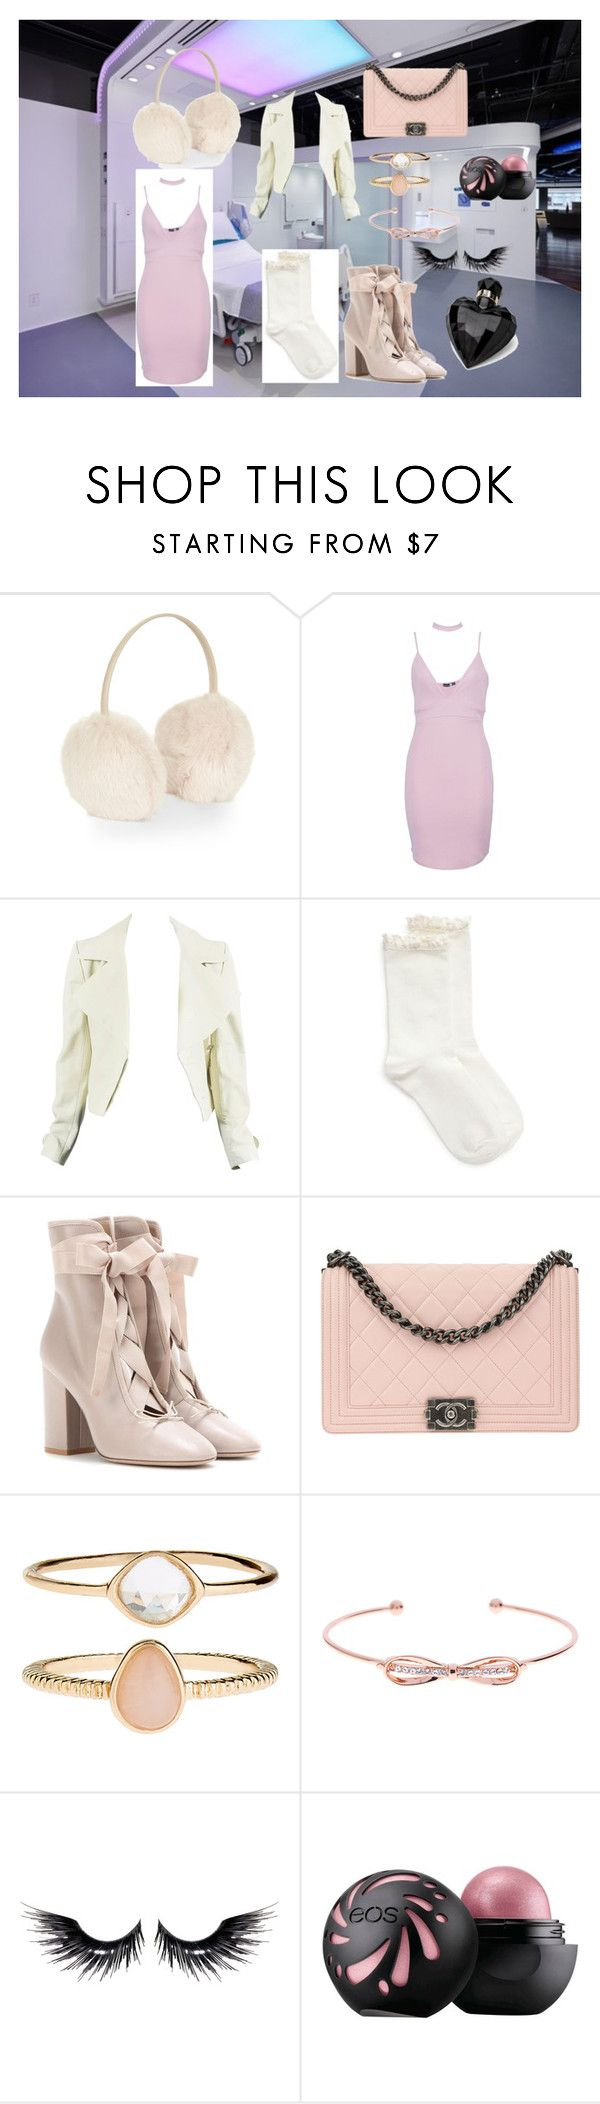 """""""chanel #3 inspo"""" by christinentais on Polyvore featuring Accessorize, Boohoo, Hue, Valentino, Chanel, Ted Baker, MAKE UP FOR EVER and Lipsy"""